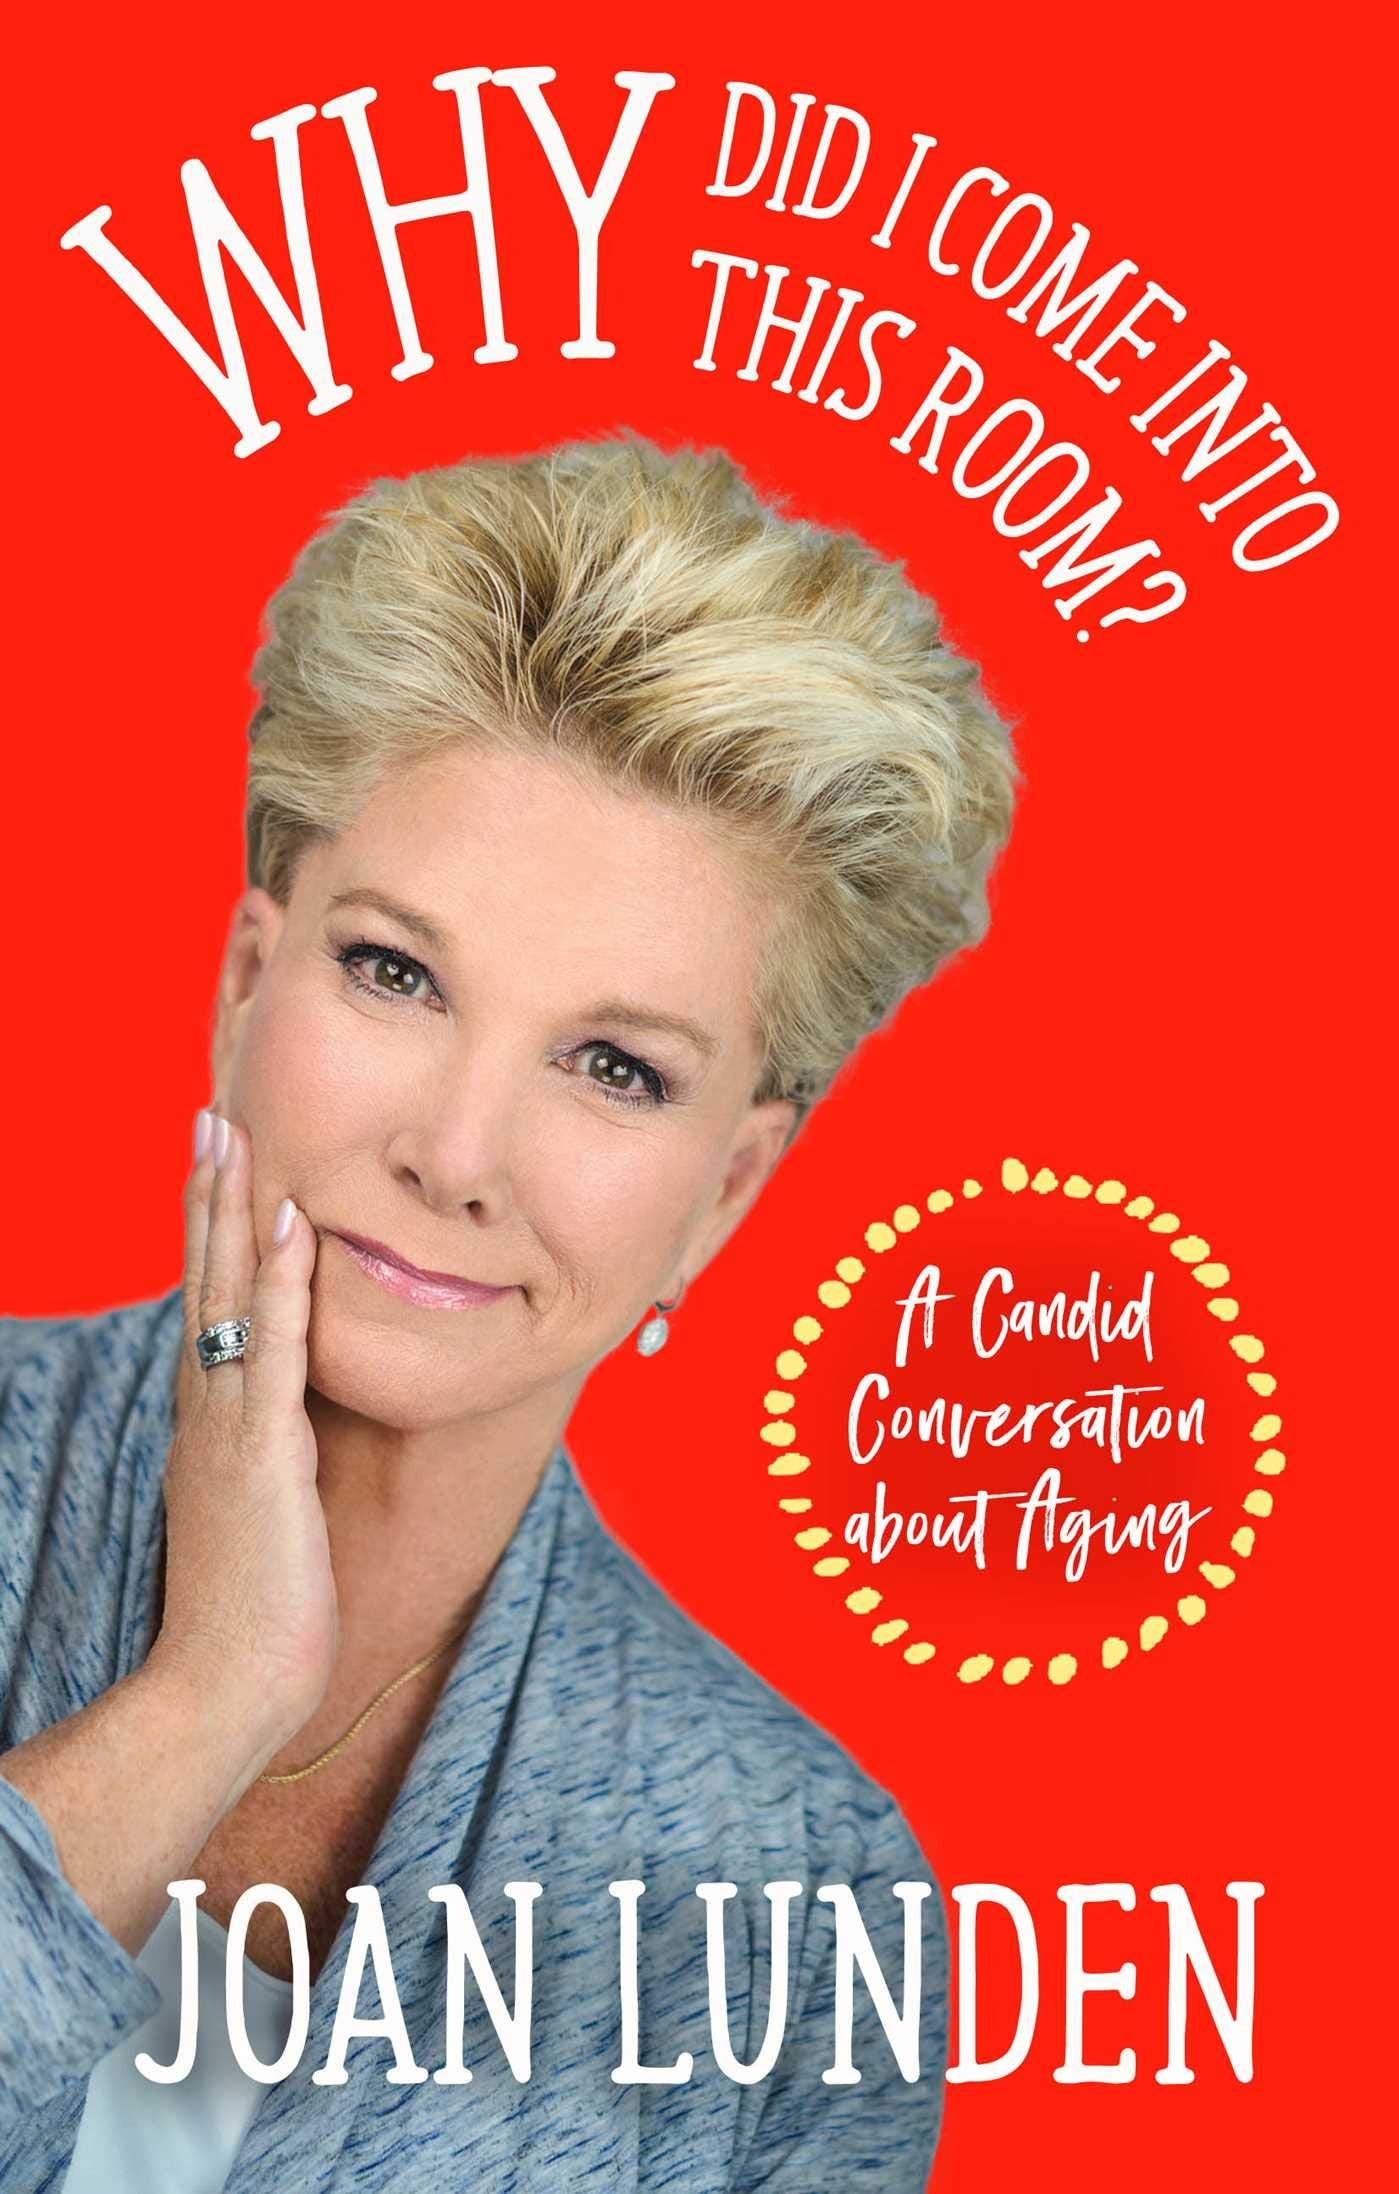 Why Did I Come Into This Room? By Joan Lunden